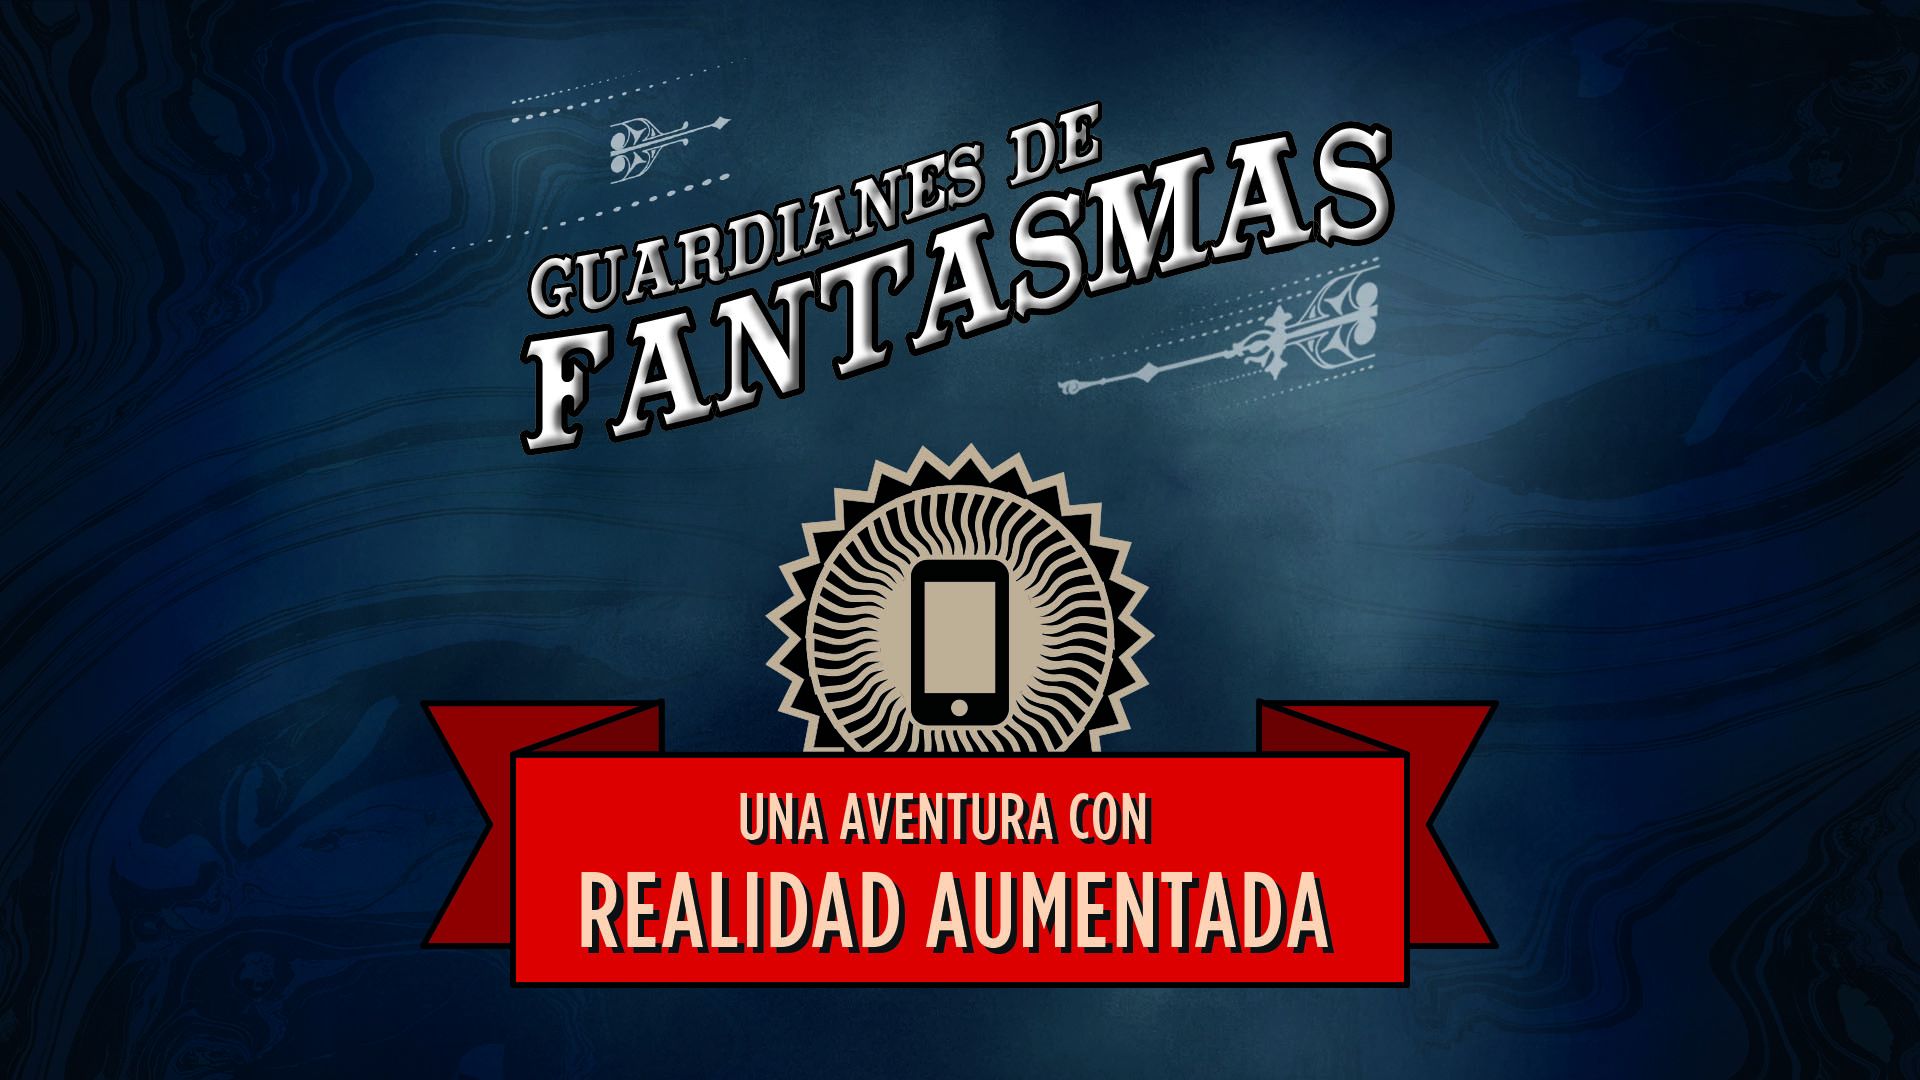 Guardianes de fantasmas